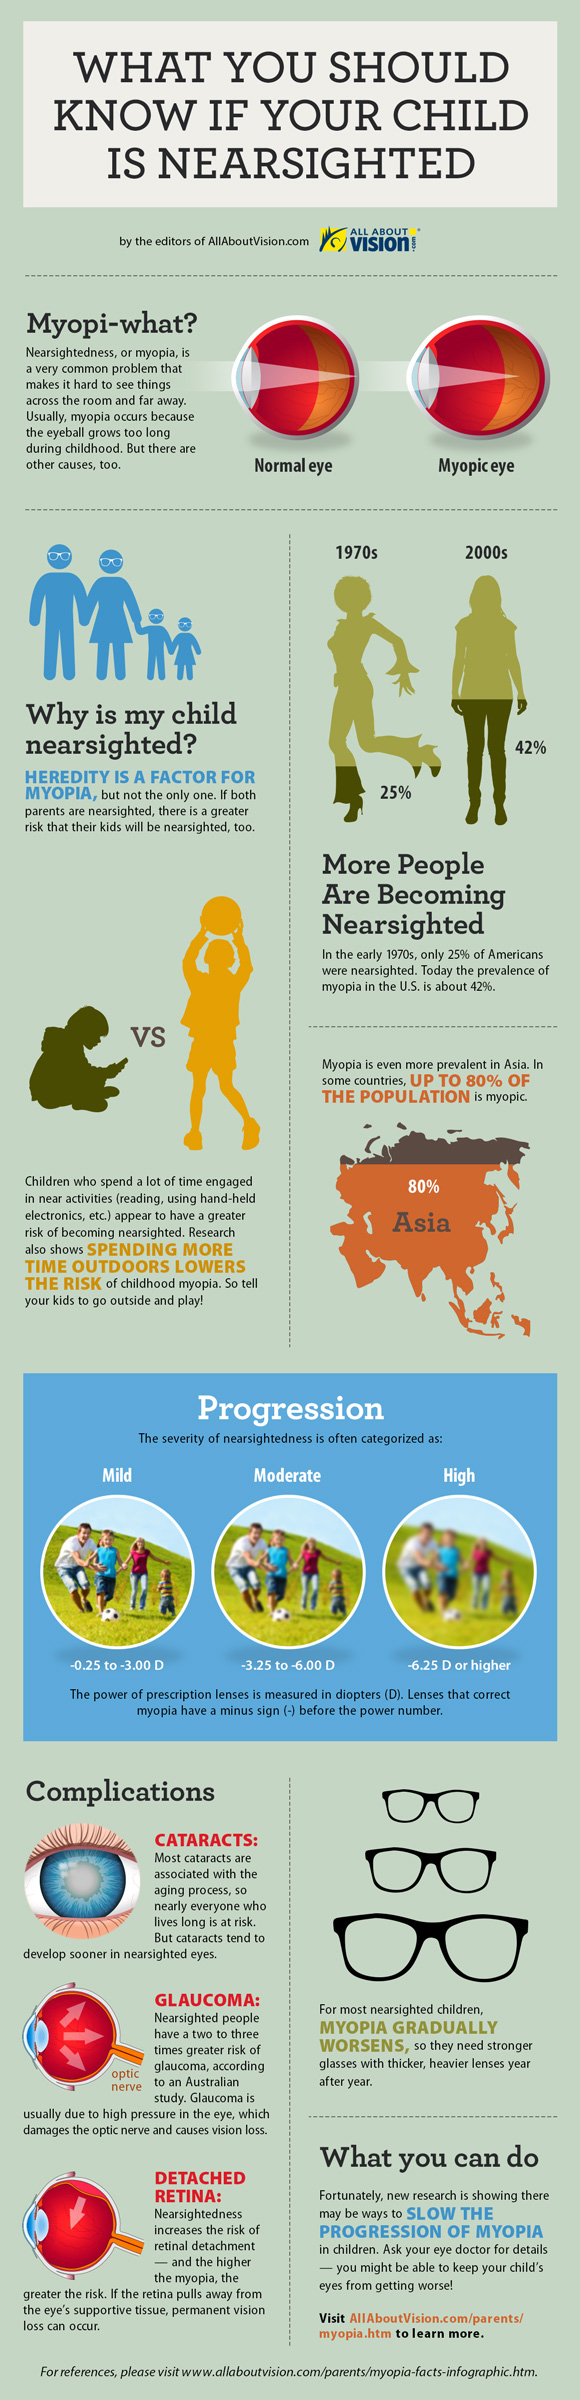 Infographic: Myopia Facts